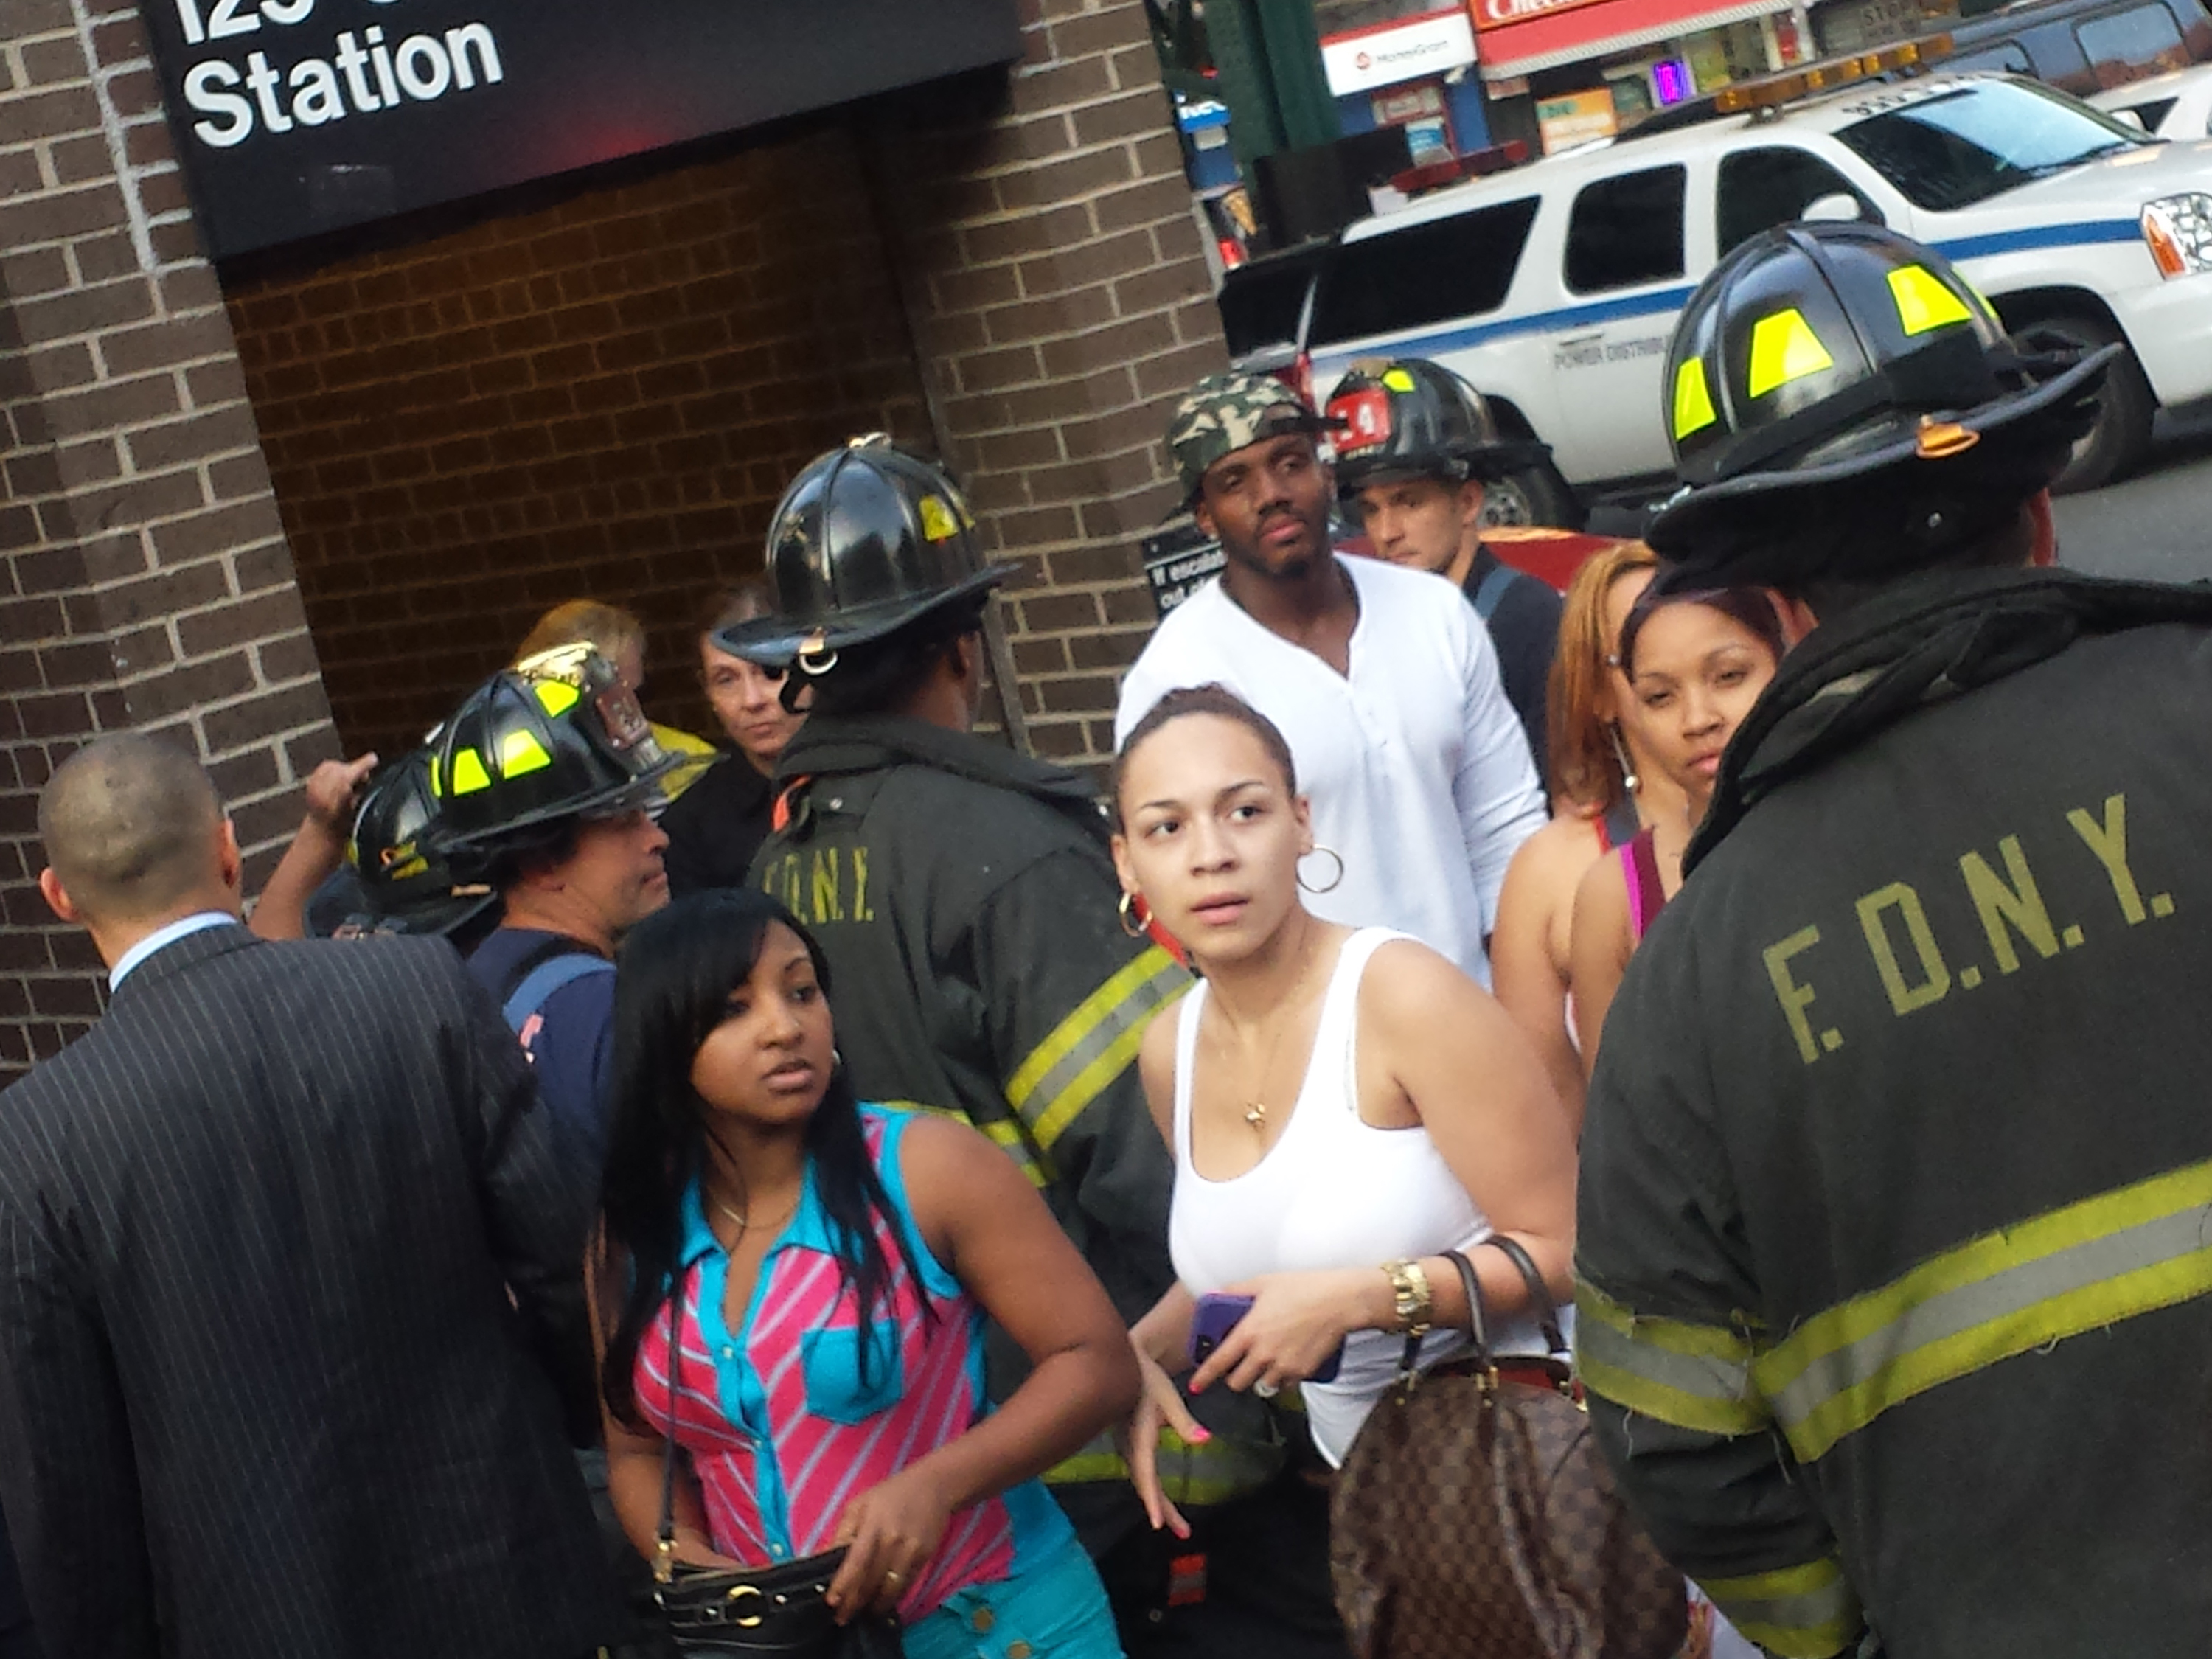 Passengers exit 125th Street station after a nearby 1 subway train derailed in New York, New York, on May 29, 2013. (Steve Silva)